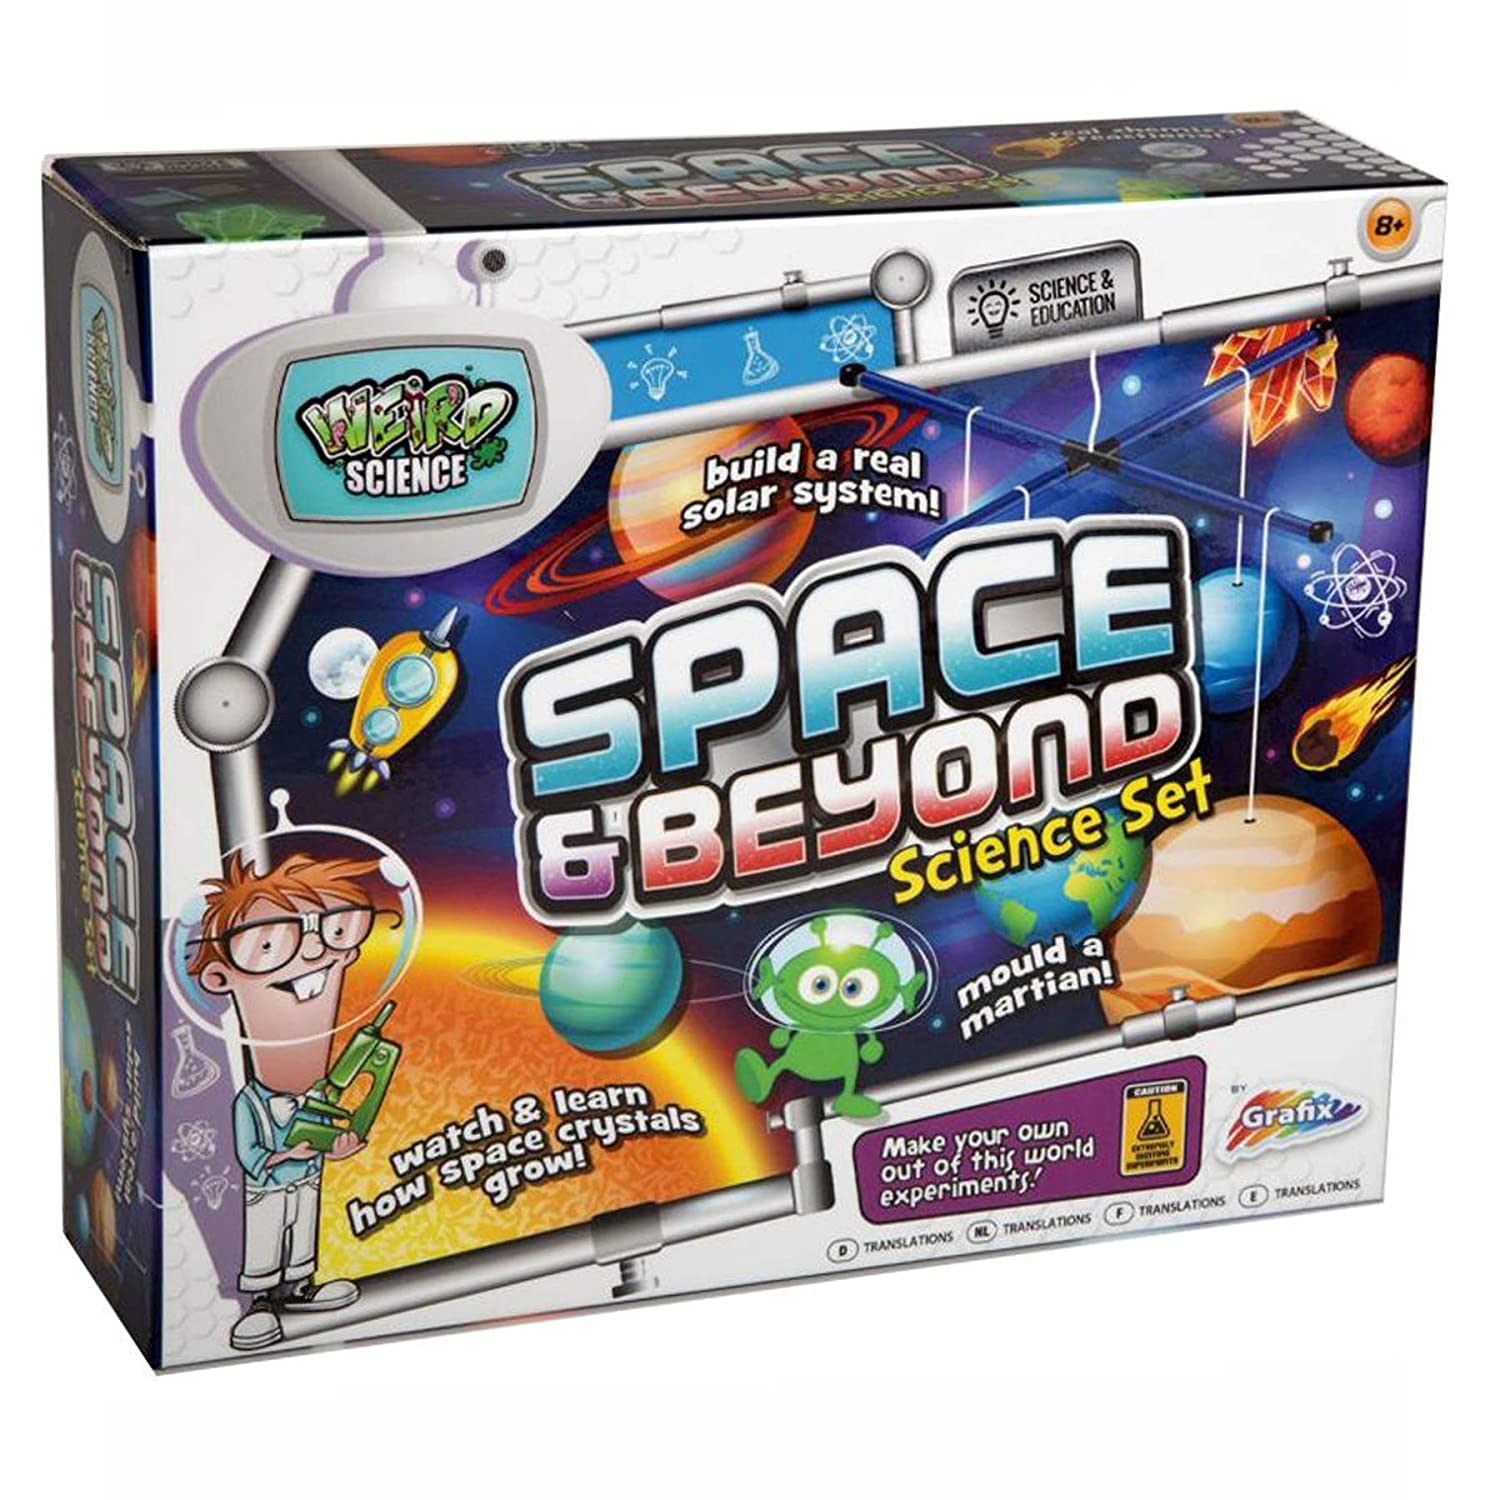 Widdle Gifts Ltd Space And Beyond Science Set - Make A Solar System Mobile 8370